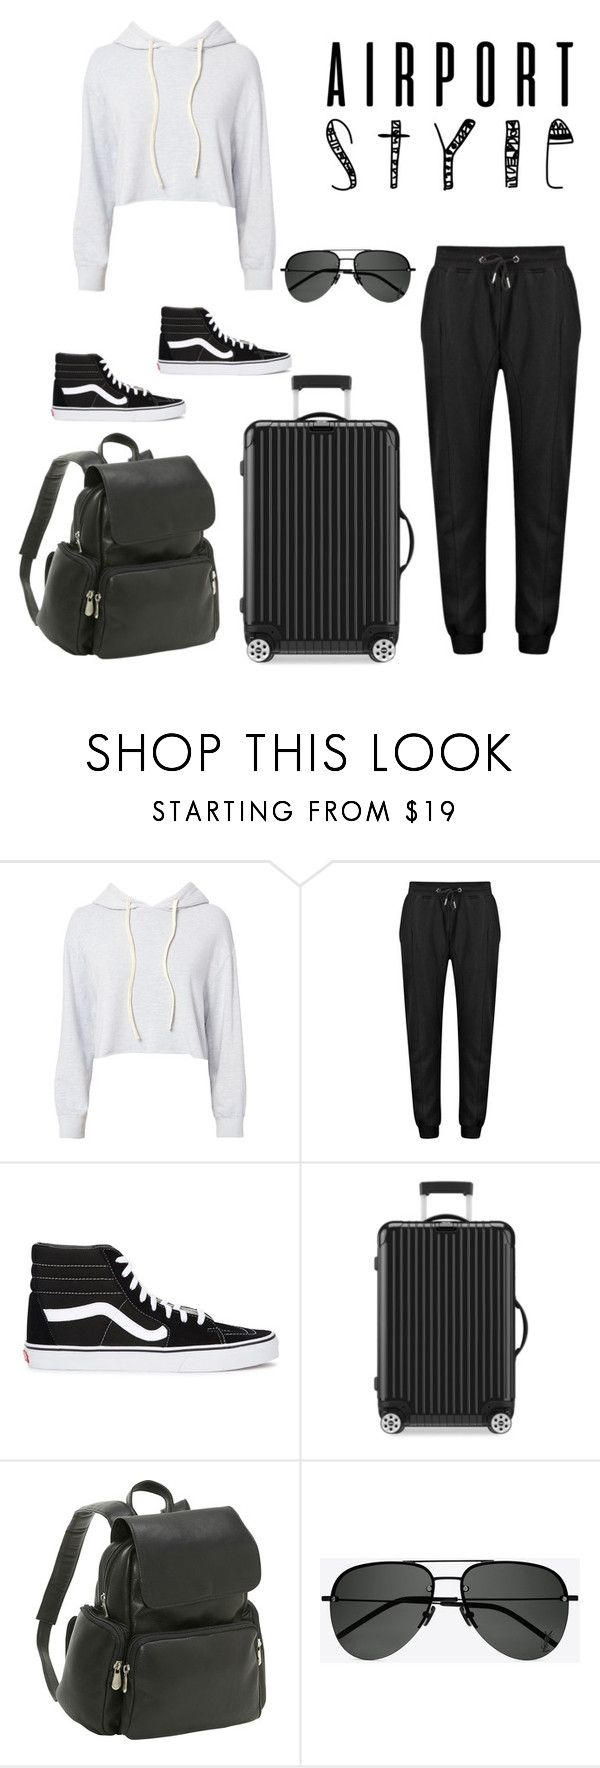 """airport vibe"" by lightskinbhaddie ❤ liked on Polyvore featuring Monrow, Vans, Rimowa, Le Donne and Yves Saint Laurent"